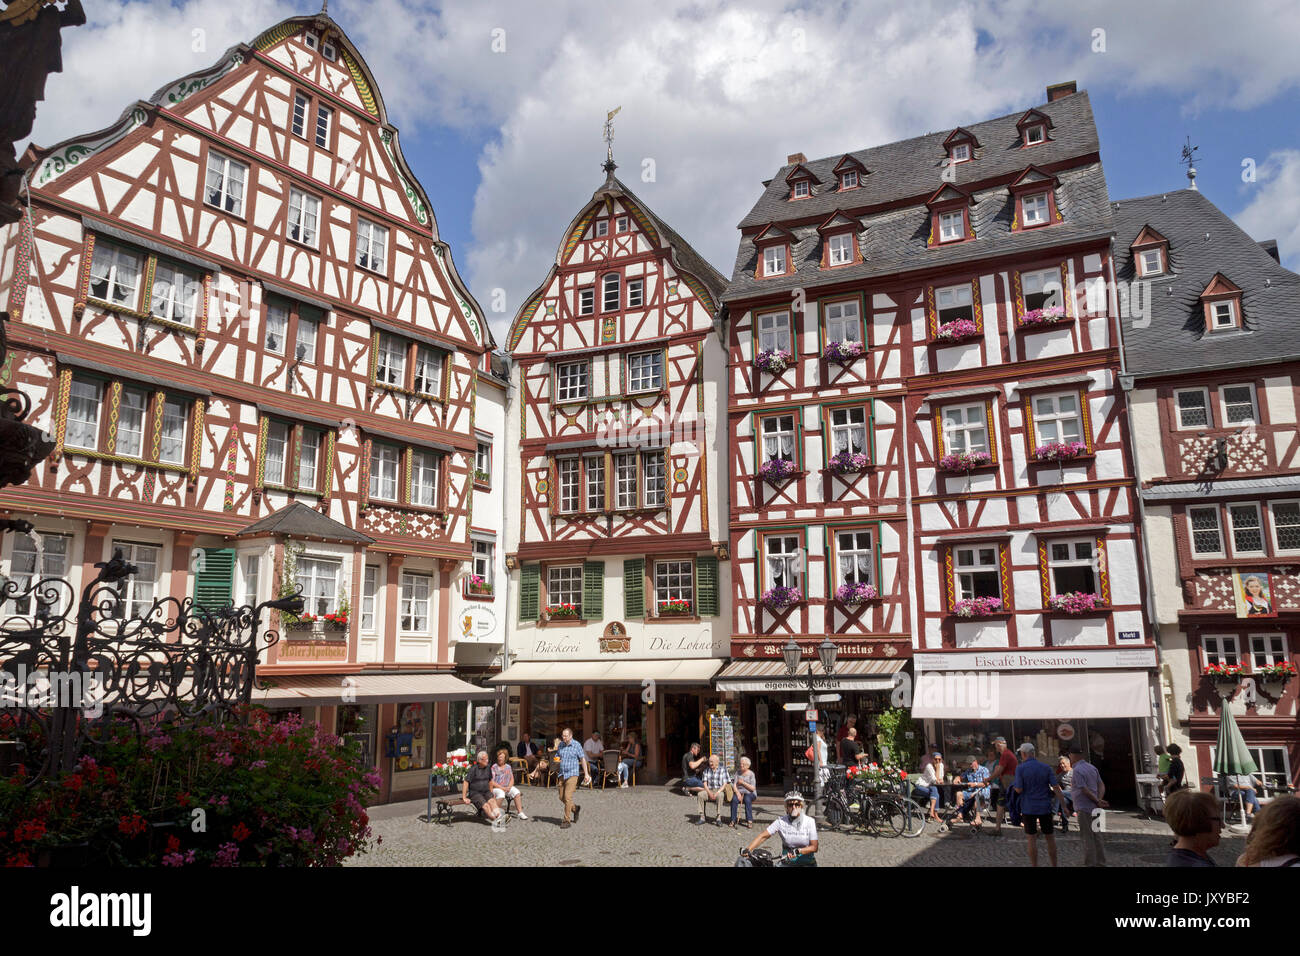 frame houses at the market square, Bernkastel-Kues, Moselle, Germany - Stock Image